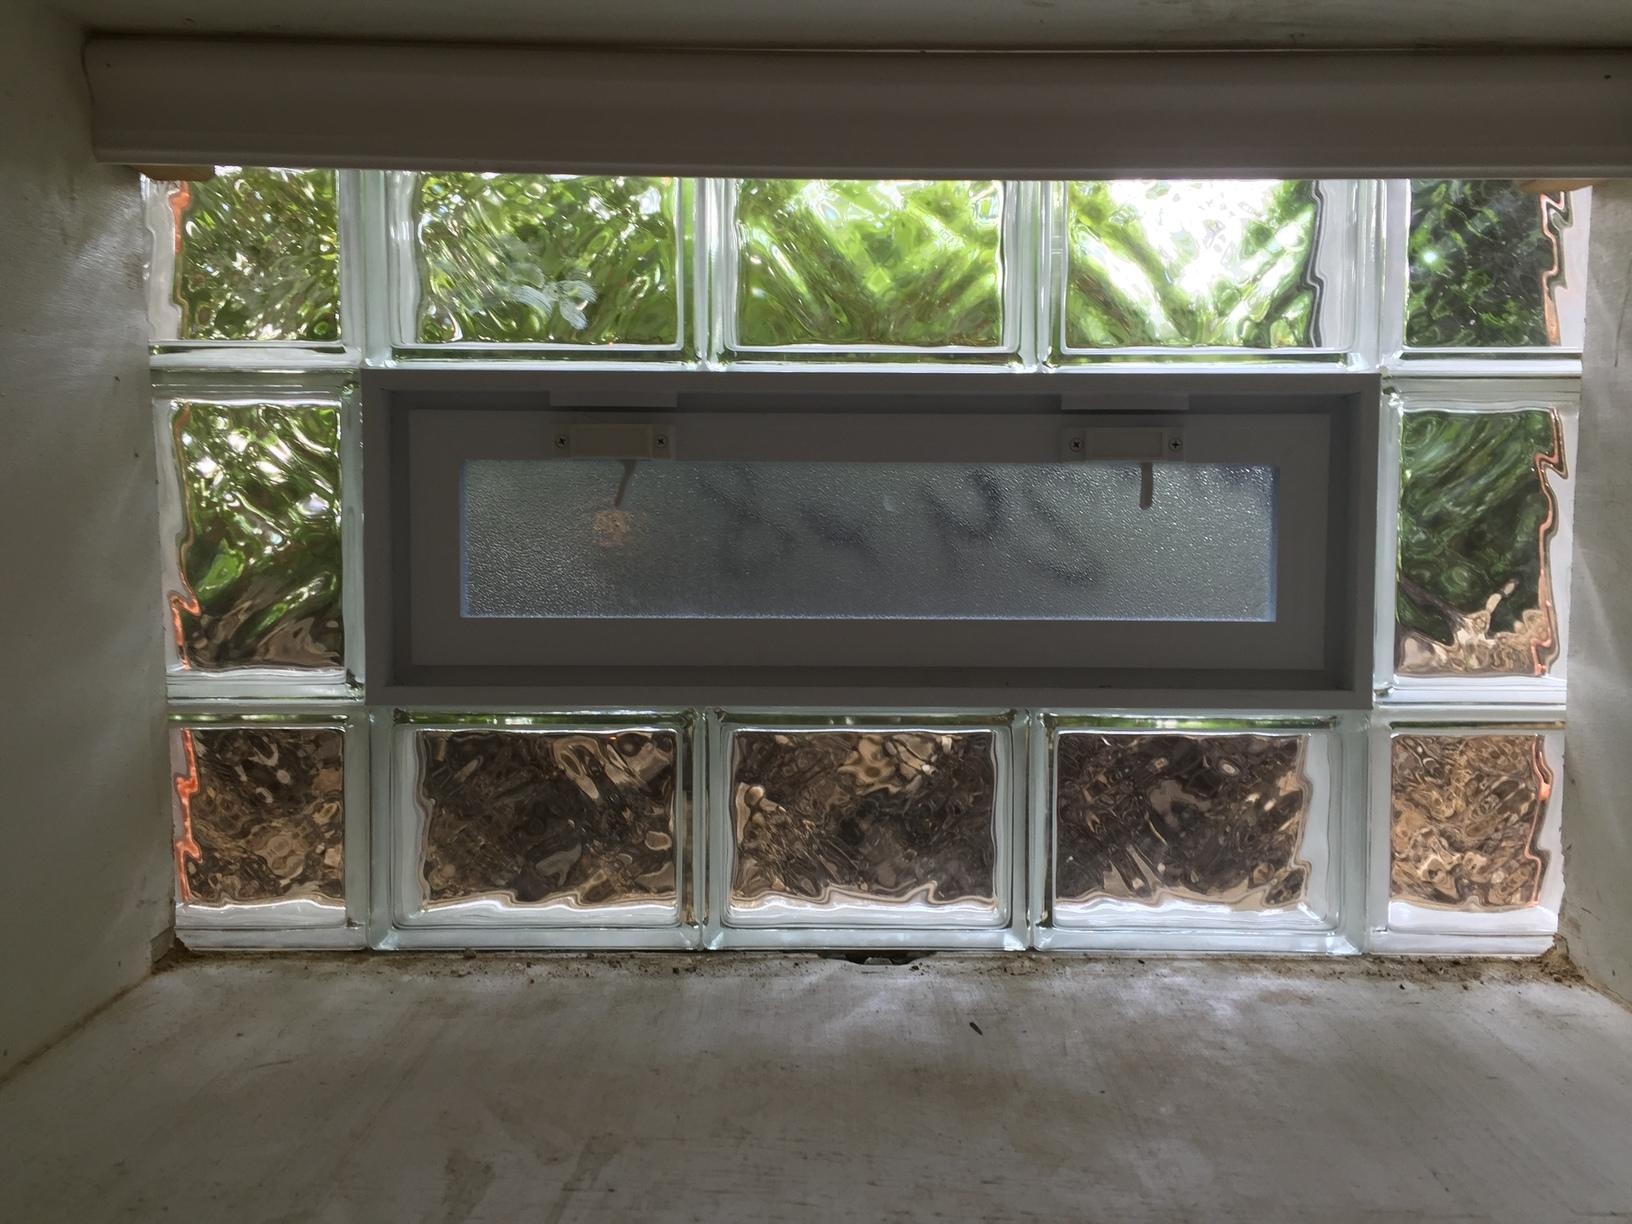 Basement Window Installation in Ambler, PA - After Photo